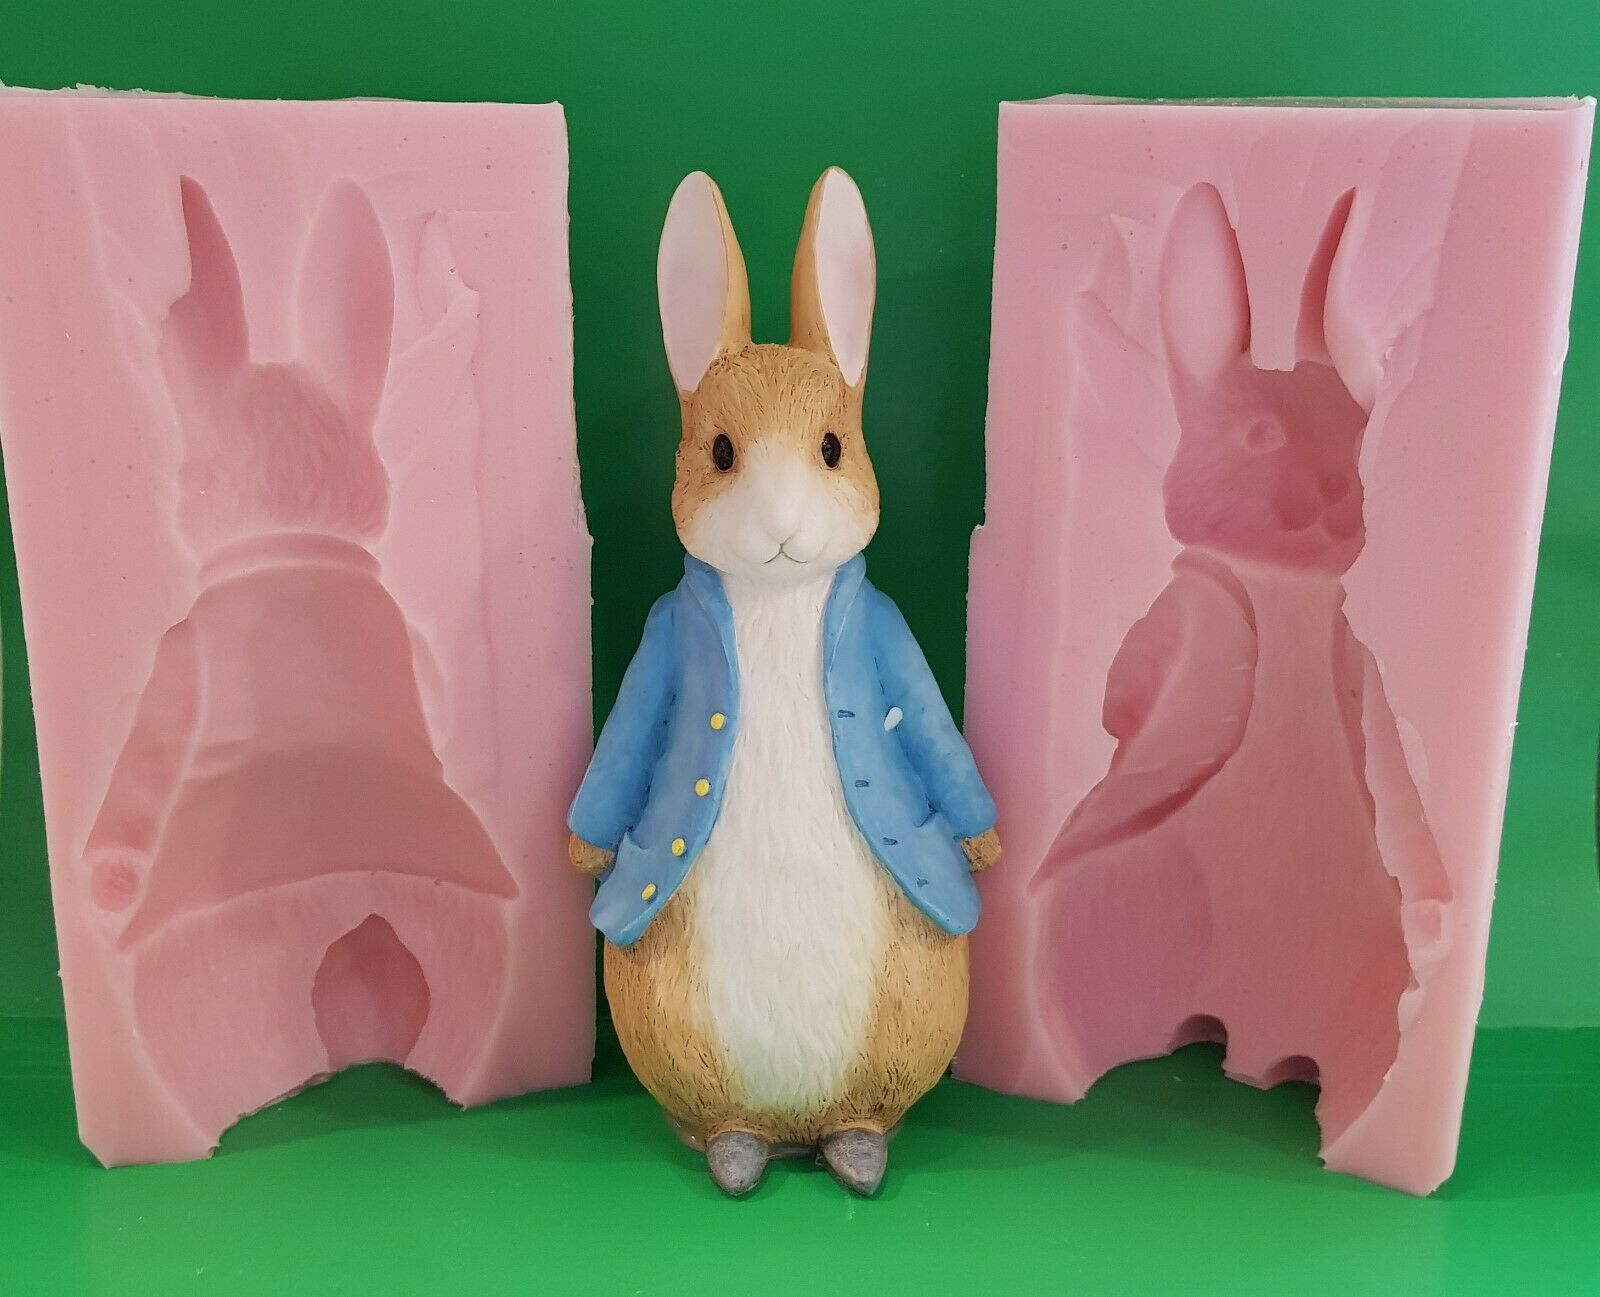 3d LARGE PETER RABBIT SILICONE MOULD FOR CAKE TOPPERS, CHOCOLATE, CLAY ETC